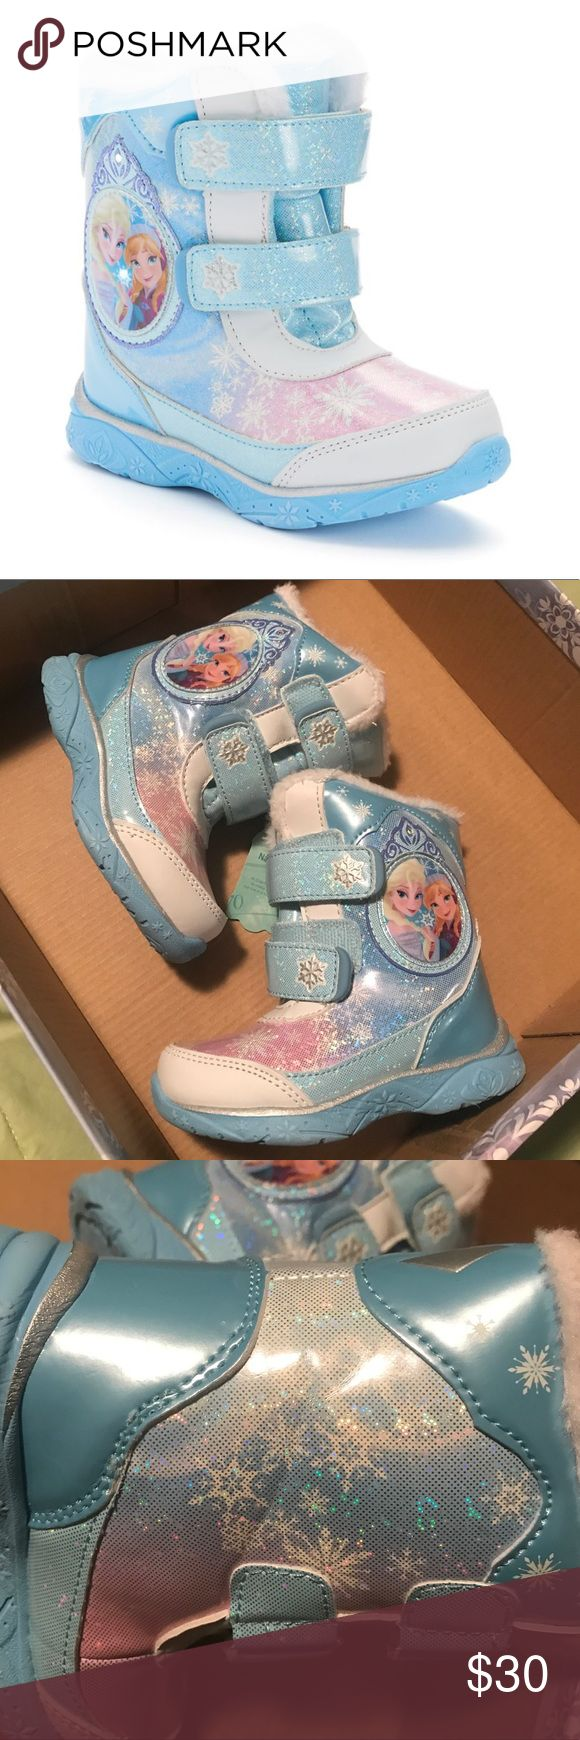 Girls light up Frozen snow boots Pale blue with holographic shine all over and lights up when you walk Disney Shoes Rain & Snow Boots